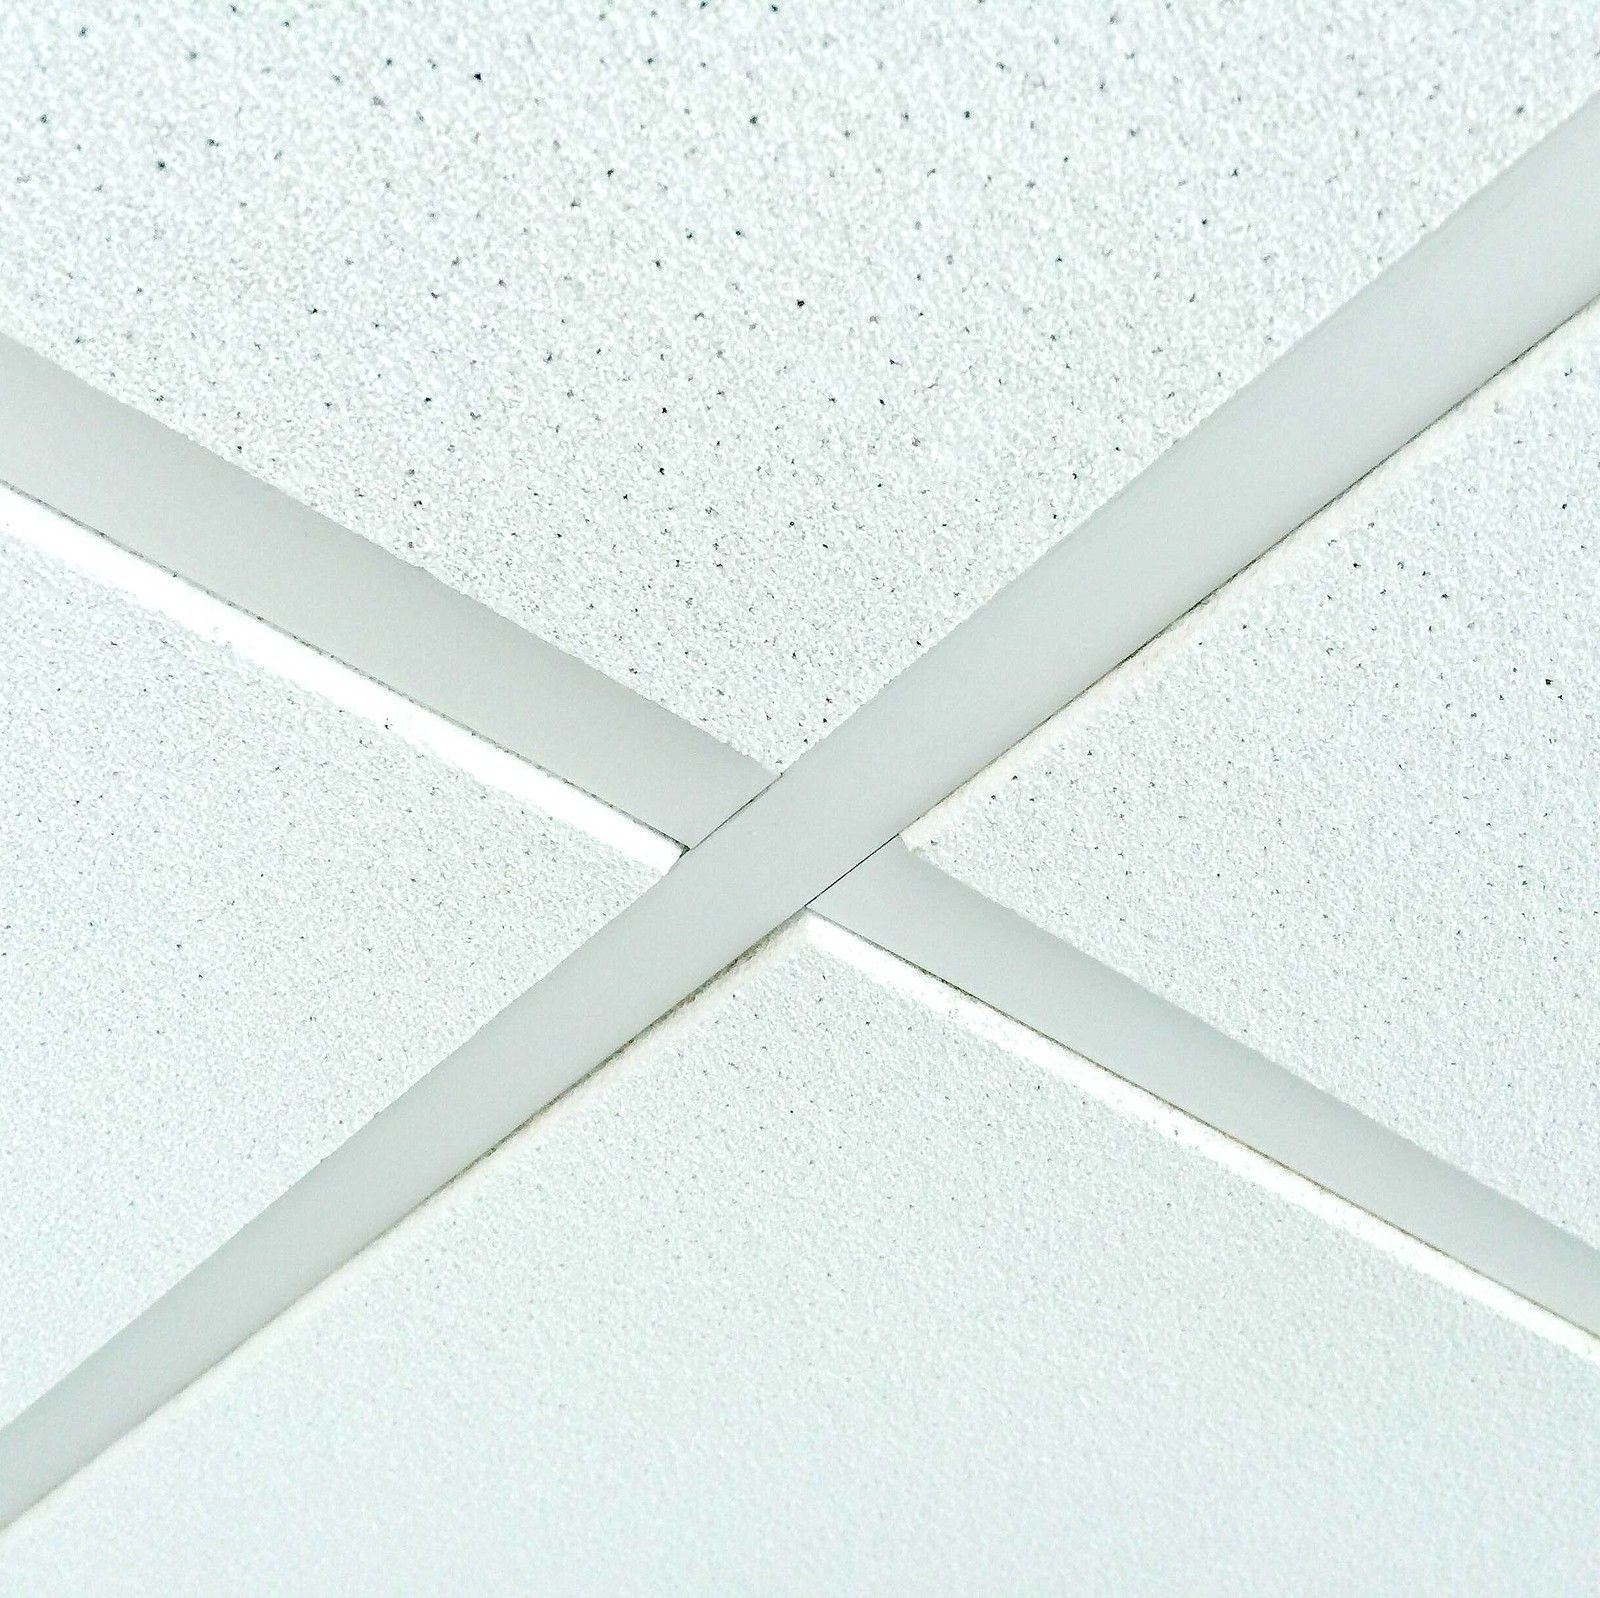 Tegular ceiling tiles